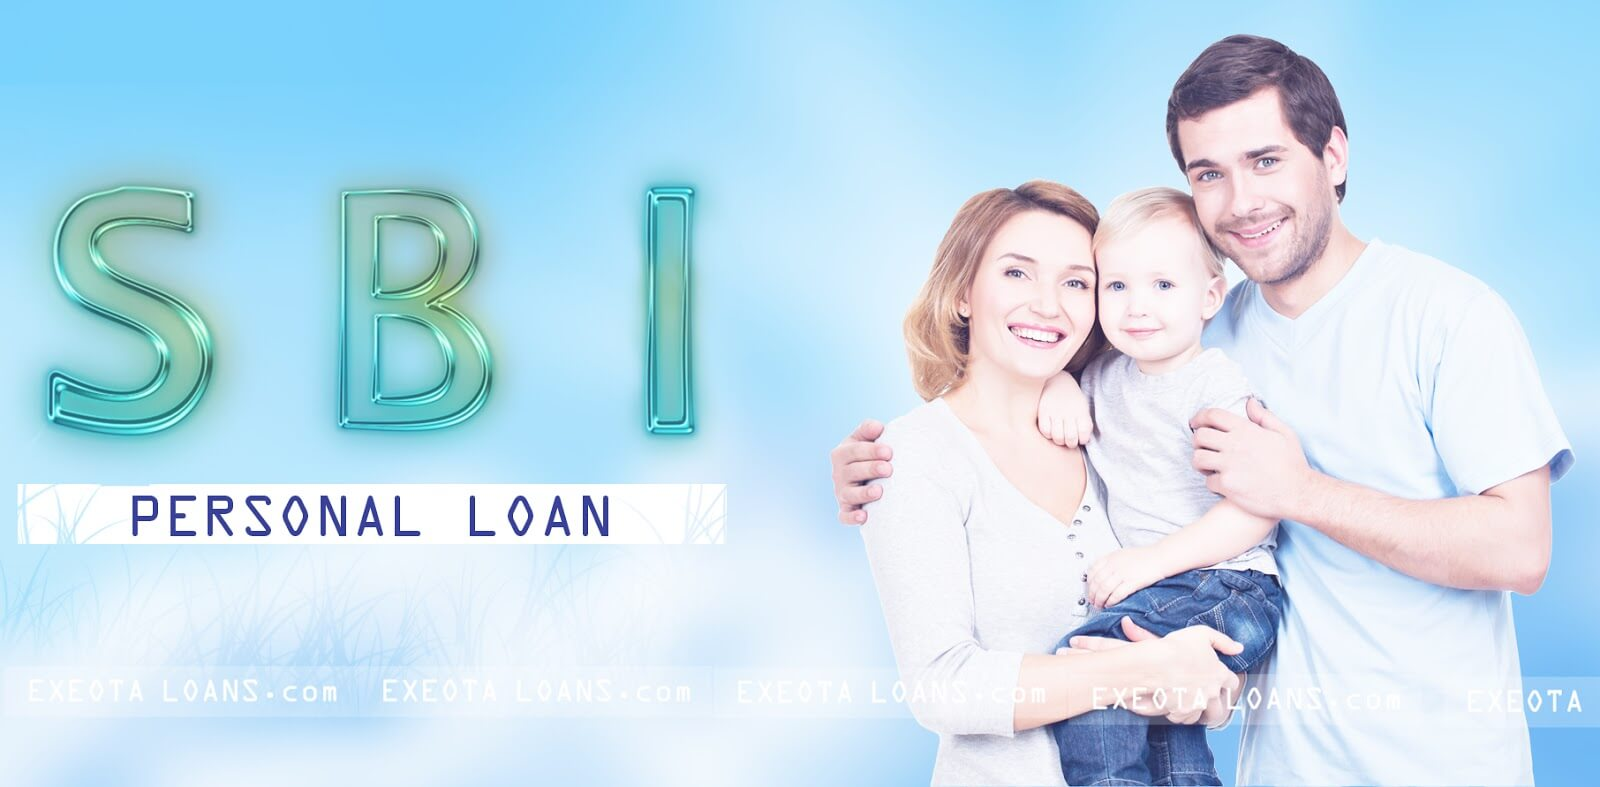 Best & Lowest Interest Rate State Bank of India Personal Loan India, Delhi/NCR, Noida 2018